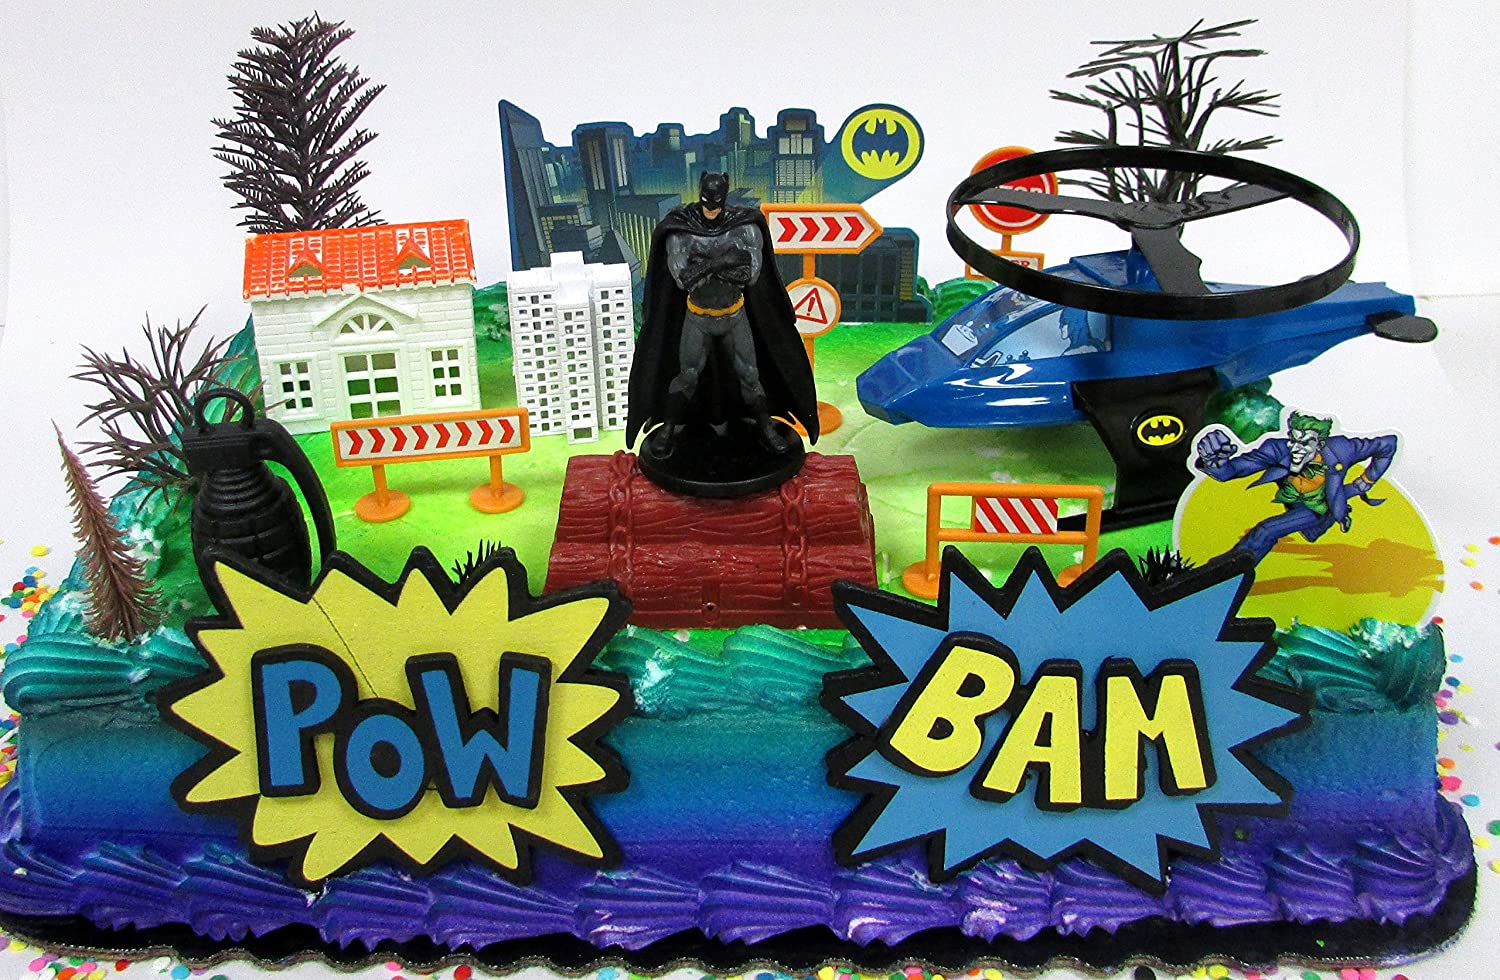 Amazon Super Hero Batman Birthday Cake Topper Set Featuring Figure And Decorative Themed Accessories Toys Games